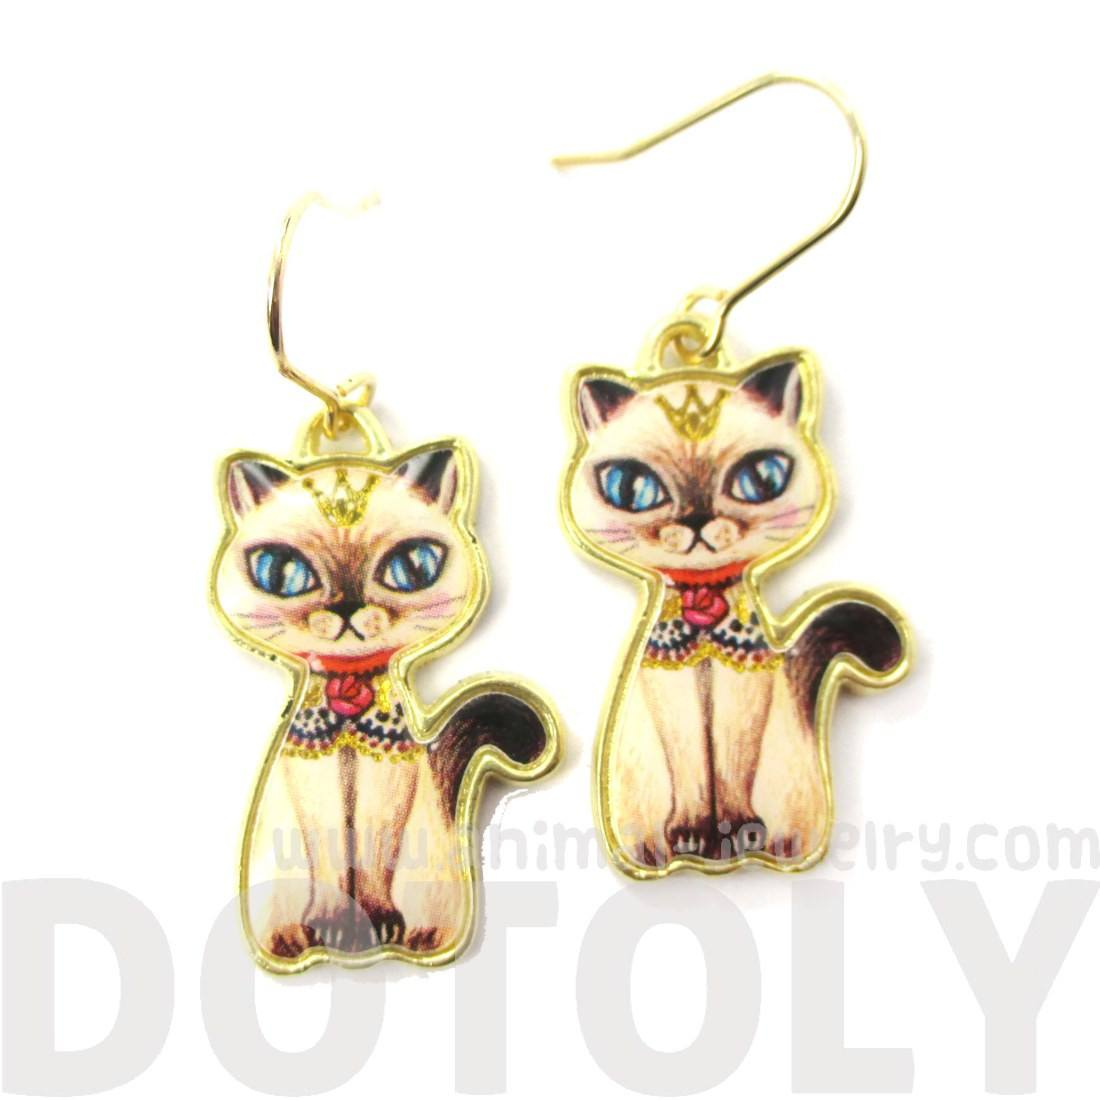 Siamese Kitty Cat Illustrated Animal Dangle Earrings